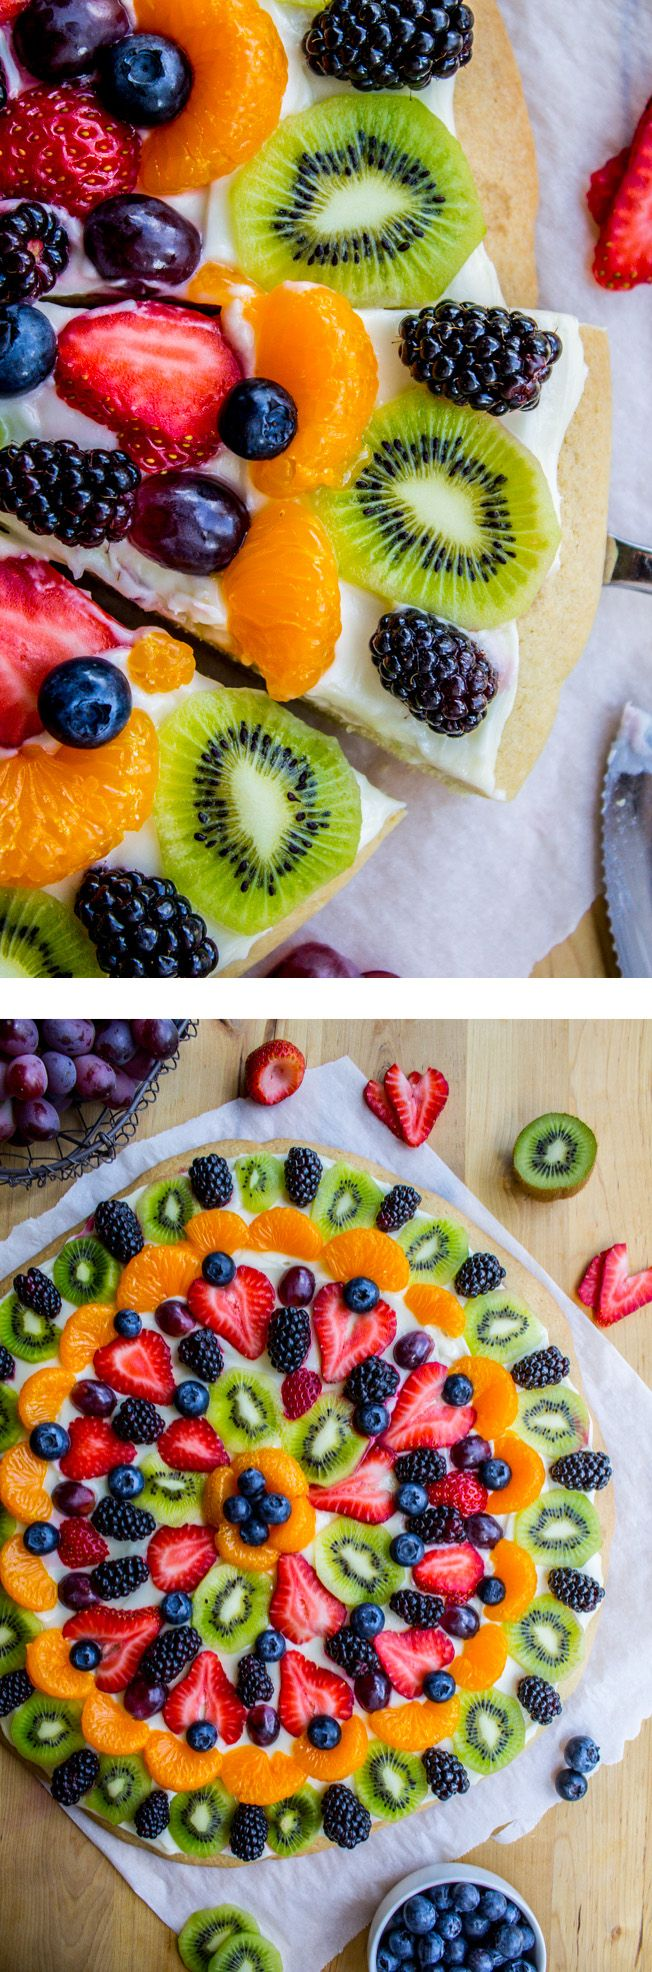 Chicago Style Fruit Pizza from The Food Charlatan. A classic sugar cookie crust with cream cheese frosting and all. the. fruit. This is an enormous pizza, and the crust is nice and thick, so call the neighbors over. Fruit pizza is the best for summer!